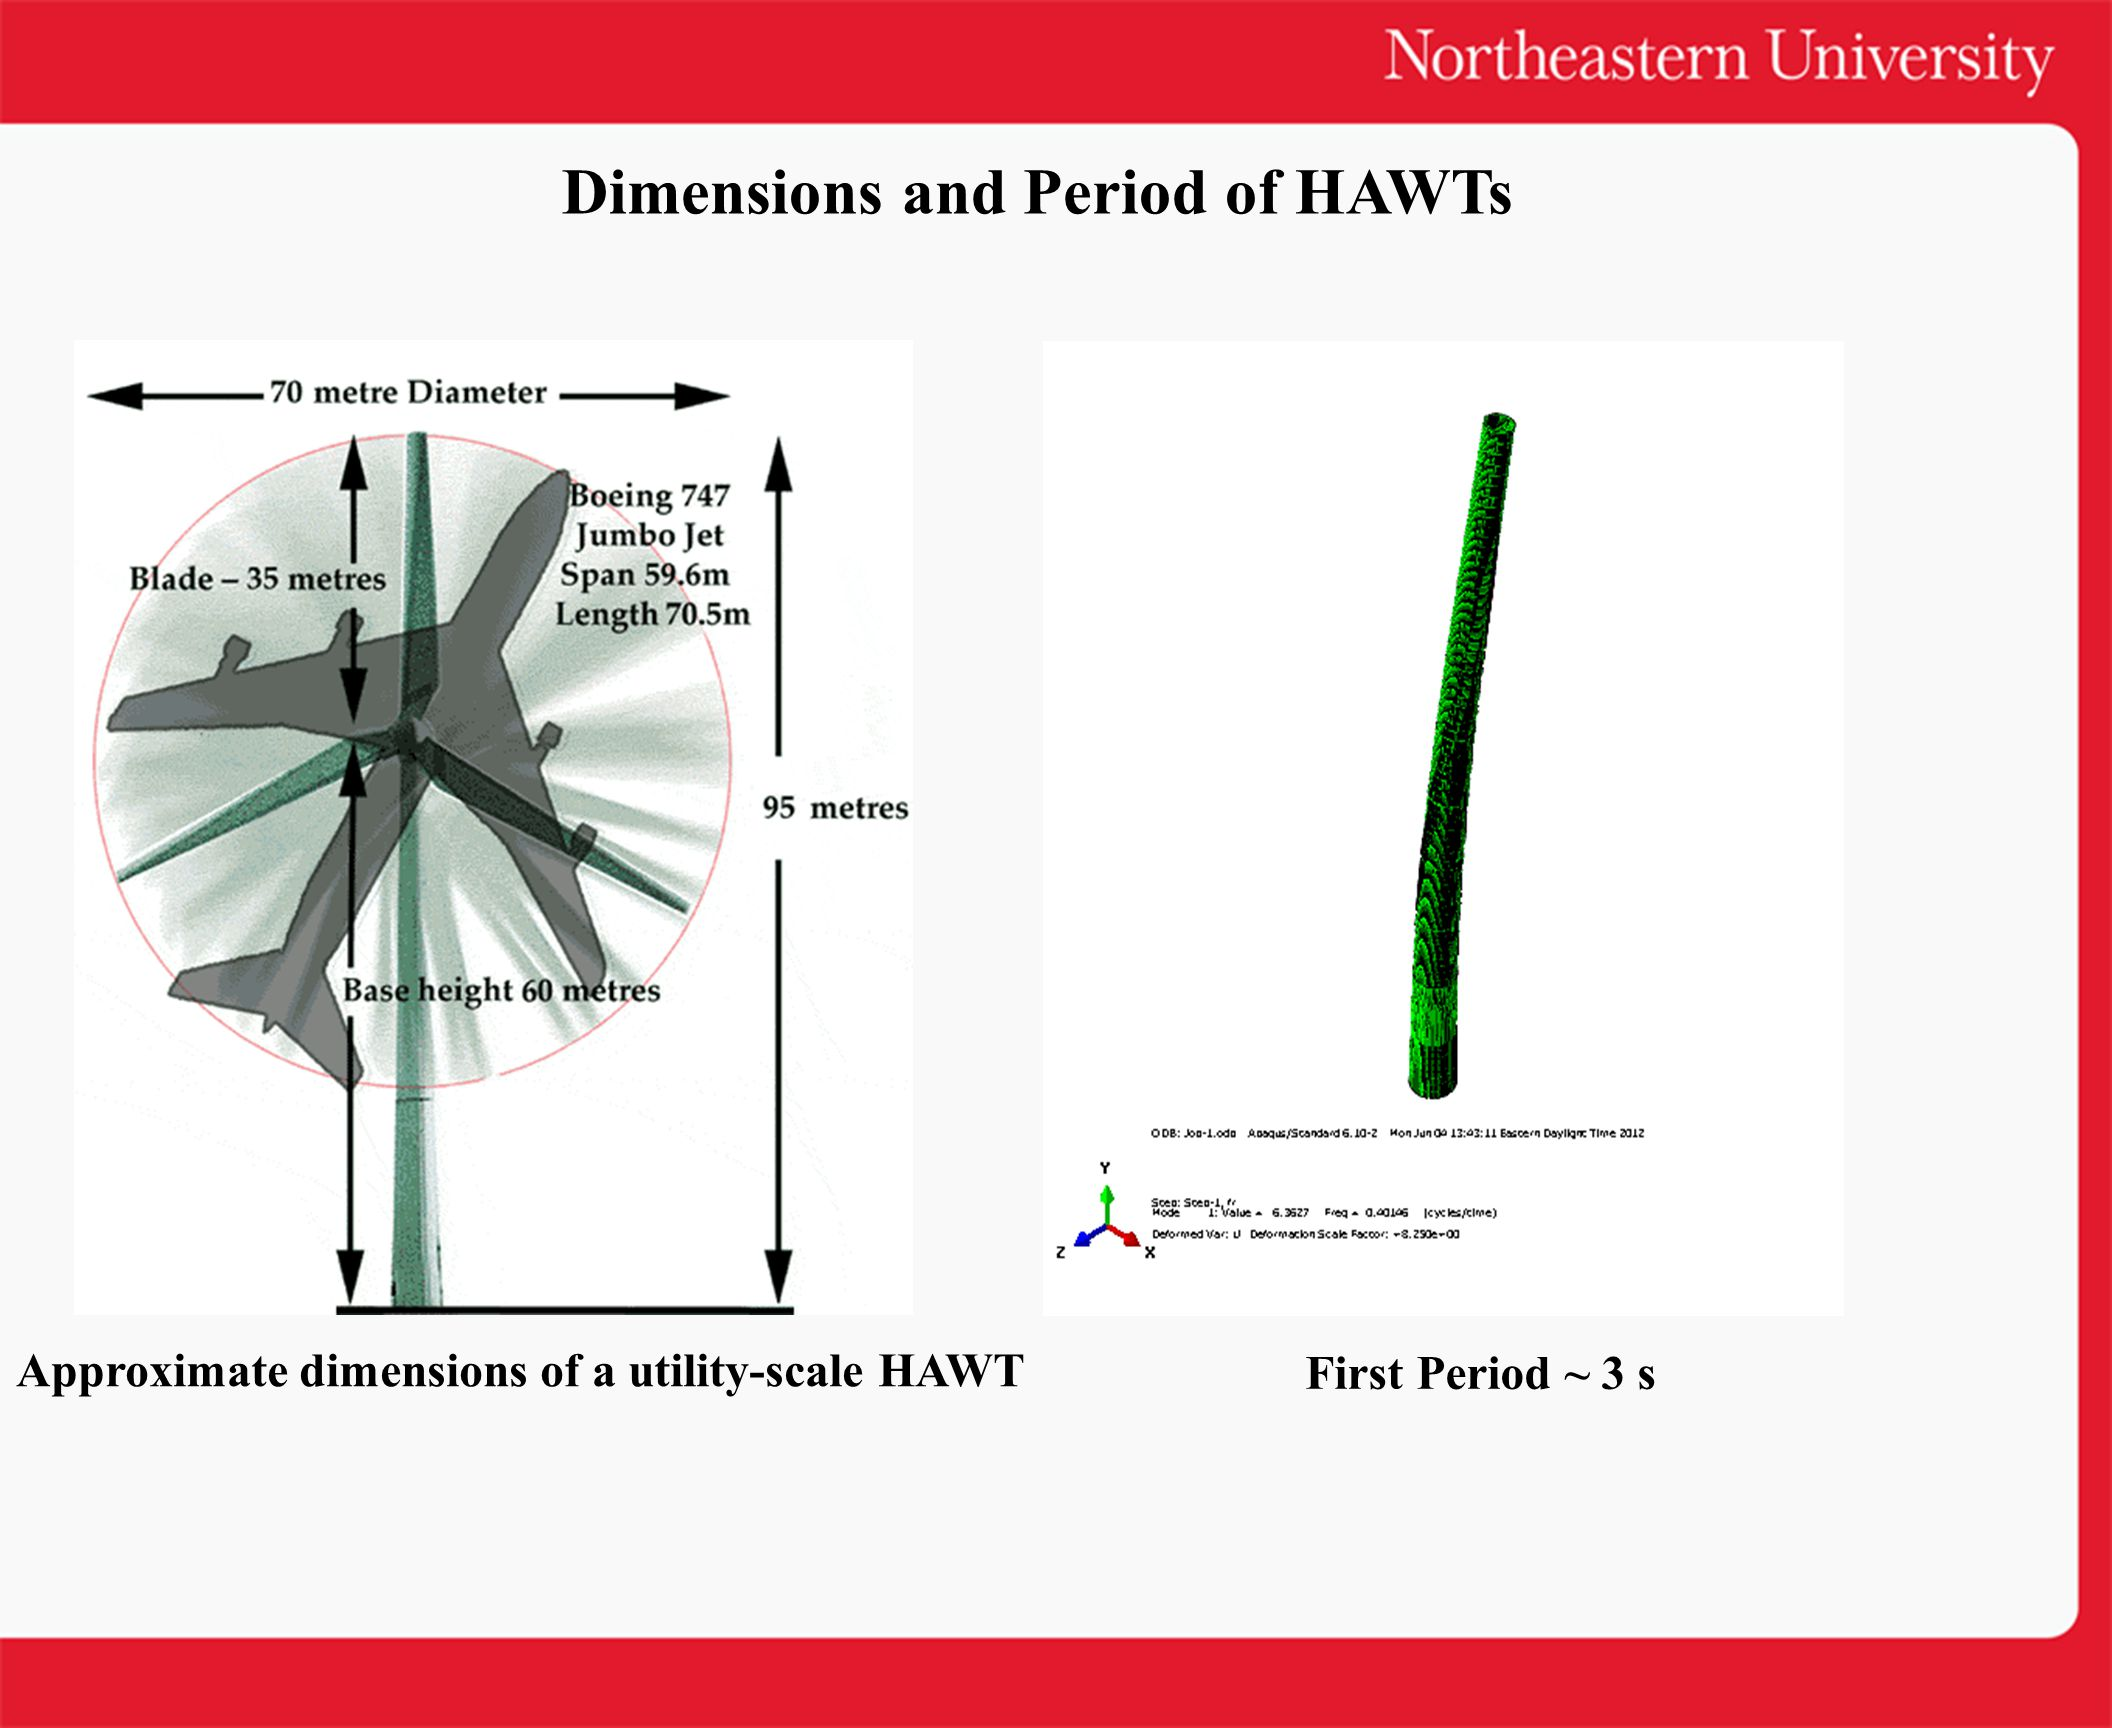 Dimensions and Period of HAWTs